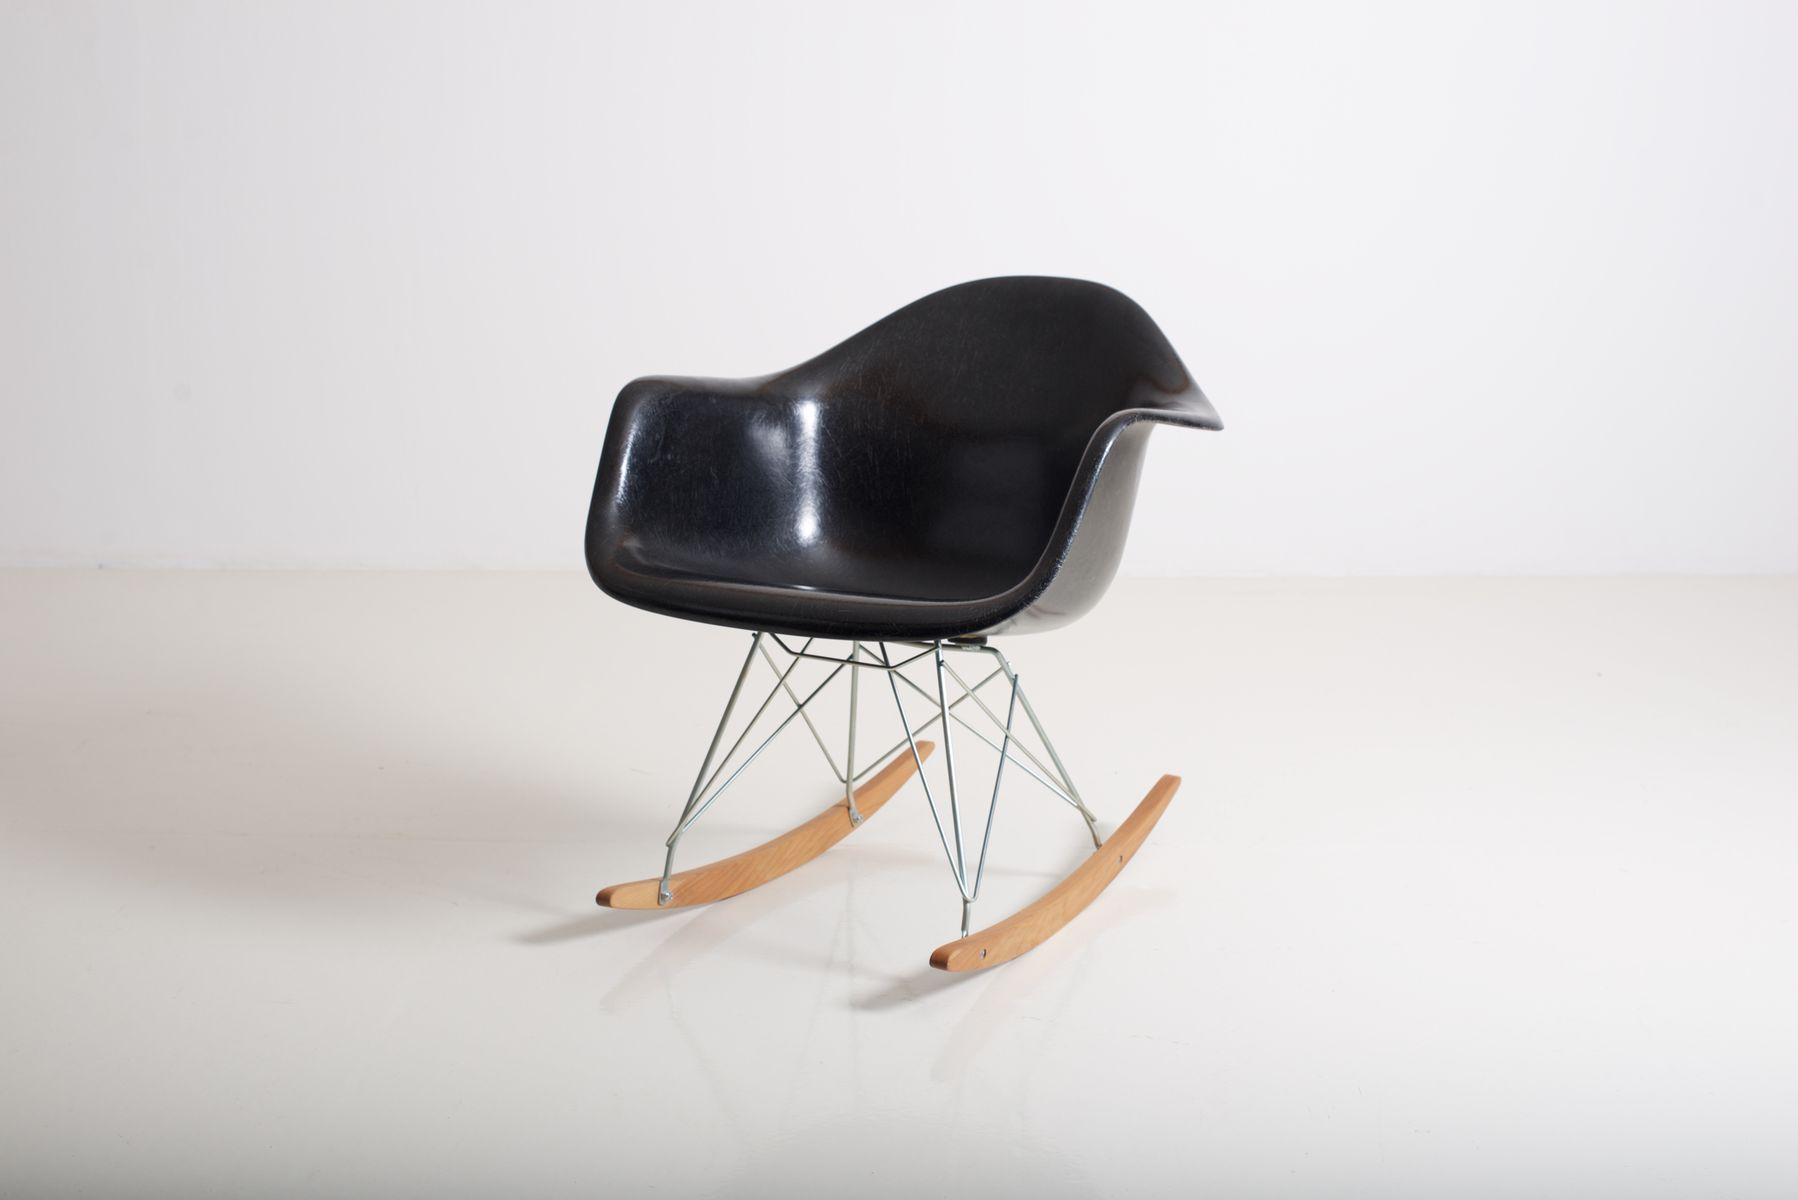 Rar rocking chair by charles ray eames for herman miller for sale at pa - Herman miller chair eames ...